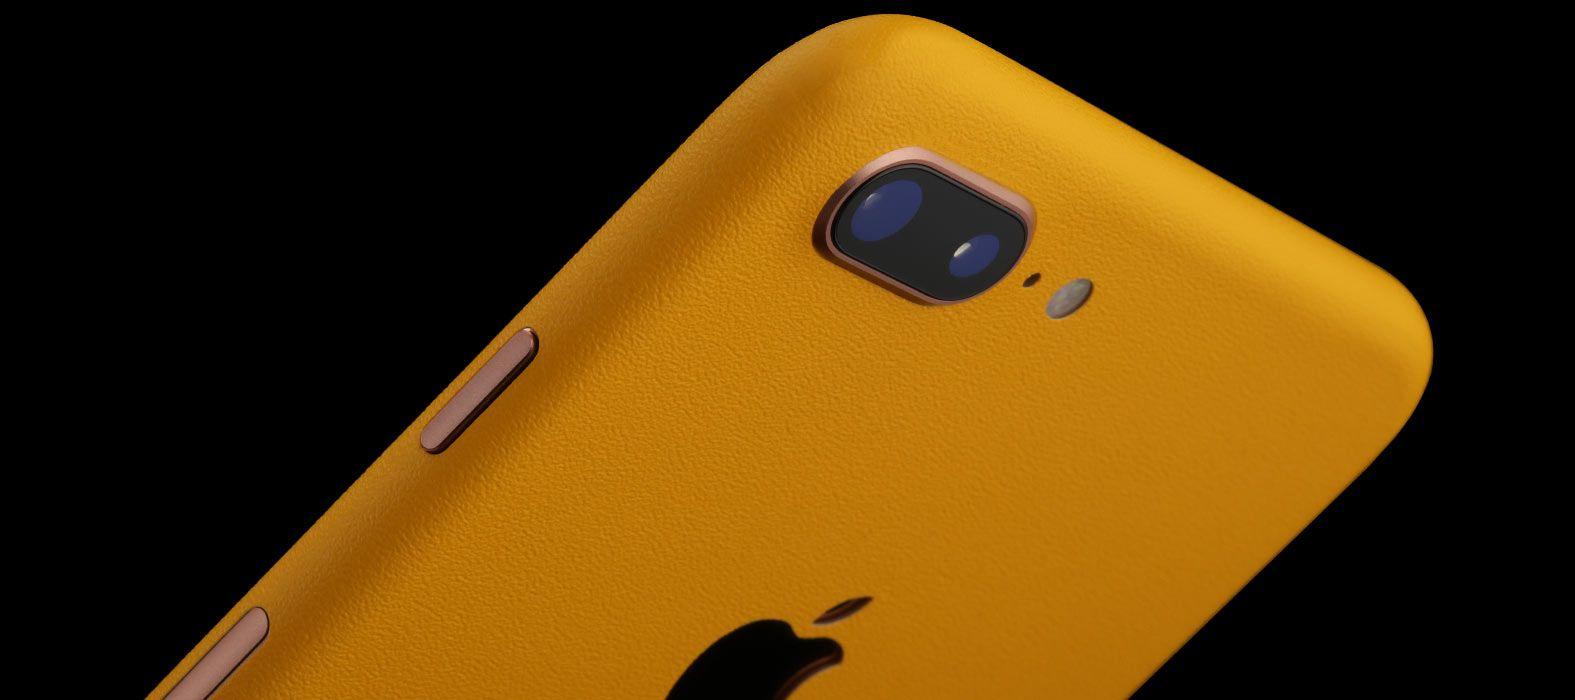 iPhone 8 Plus Sandstone Yellow Skins